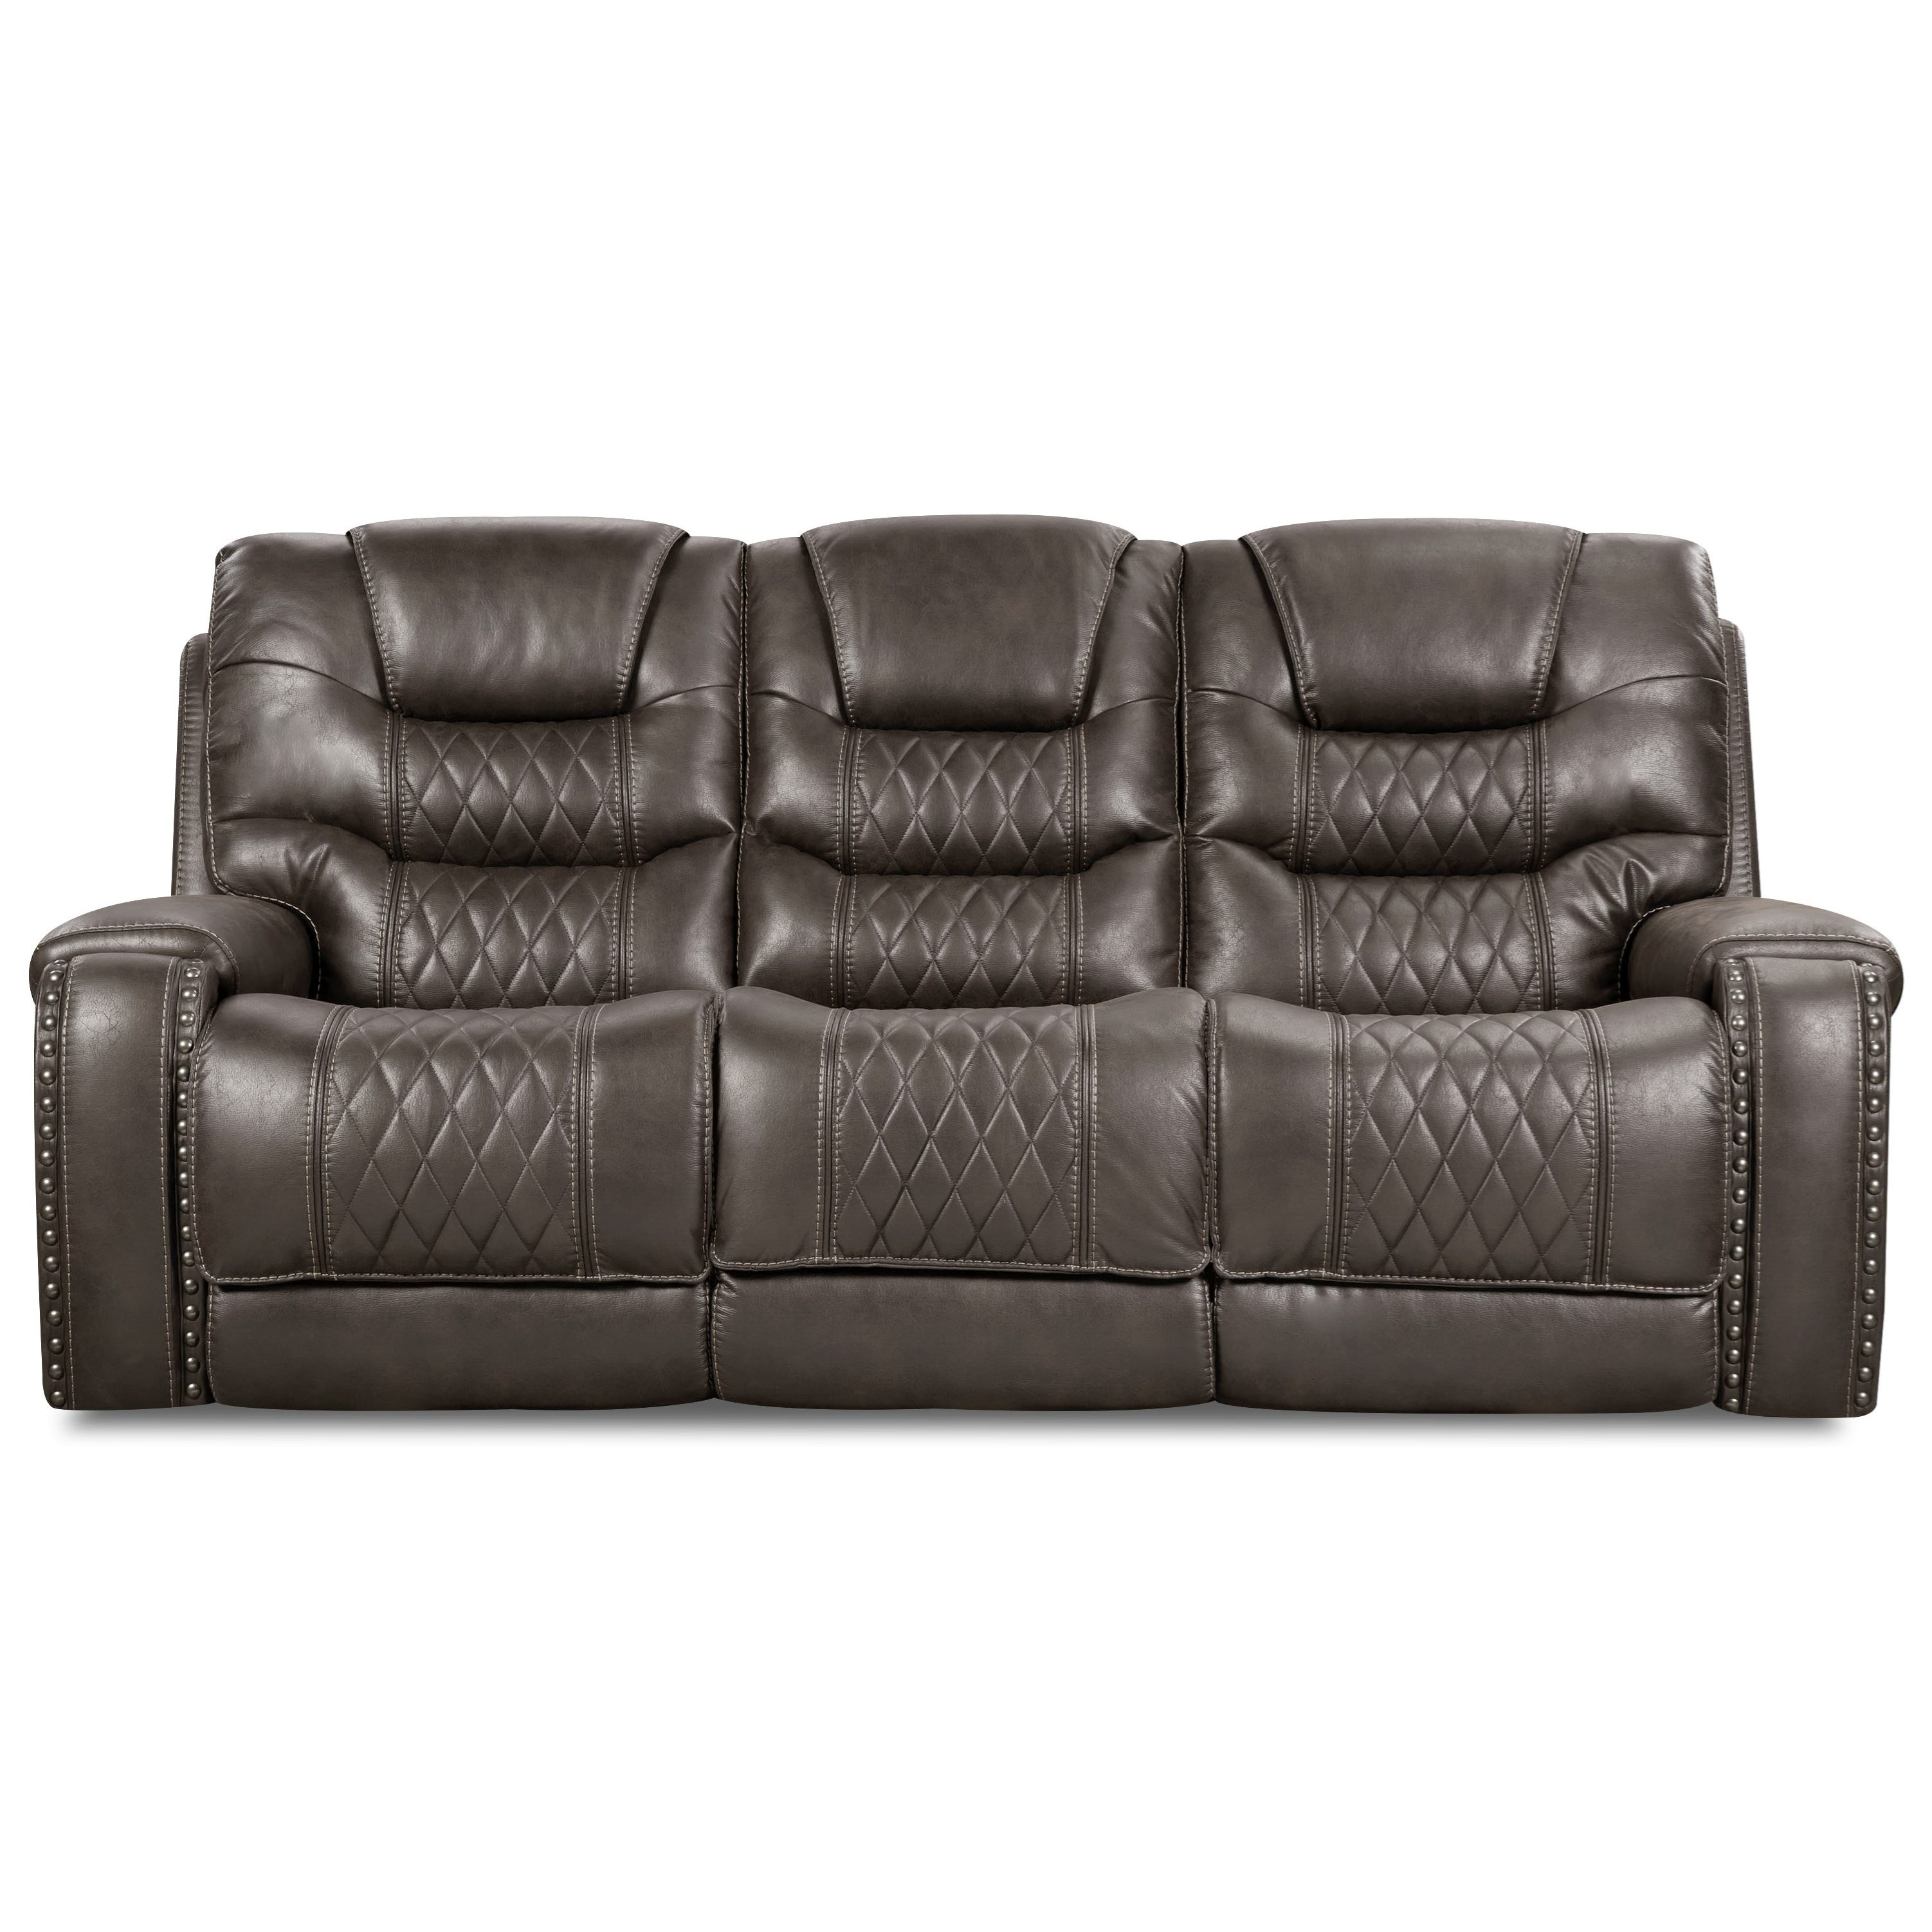 88803 Power Headrest Sofa with Drop-Down Table at Virginia Furniture Market